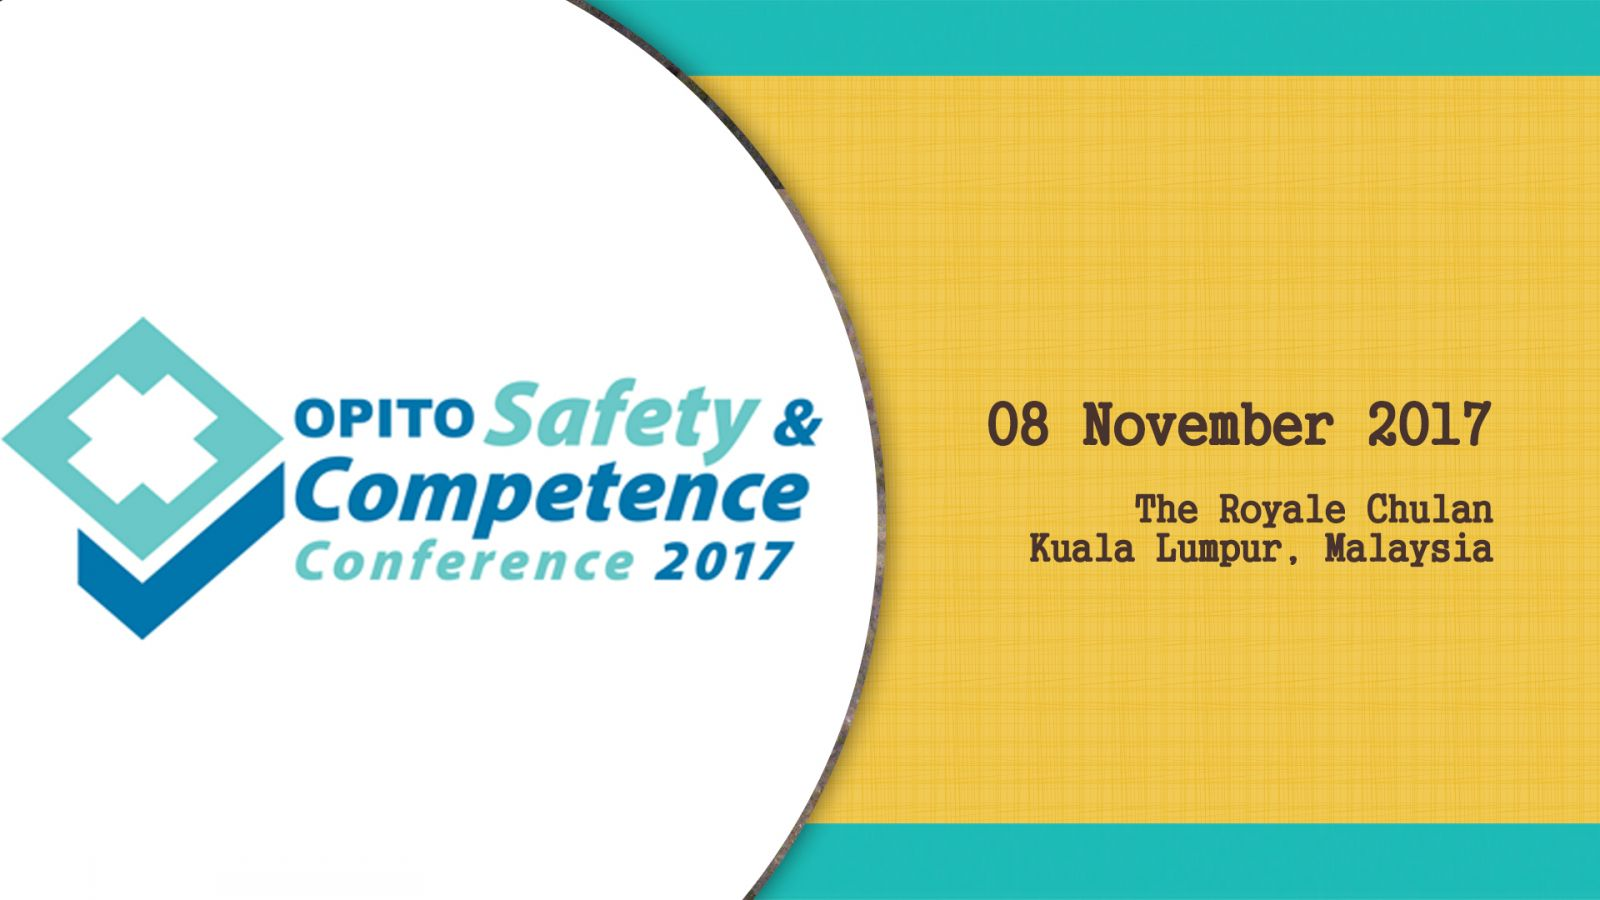 OPITO Safety & Competence Conference 2017 Event Banner